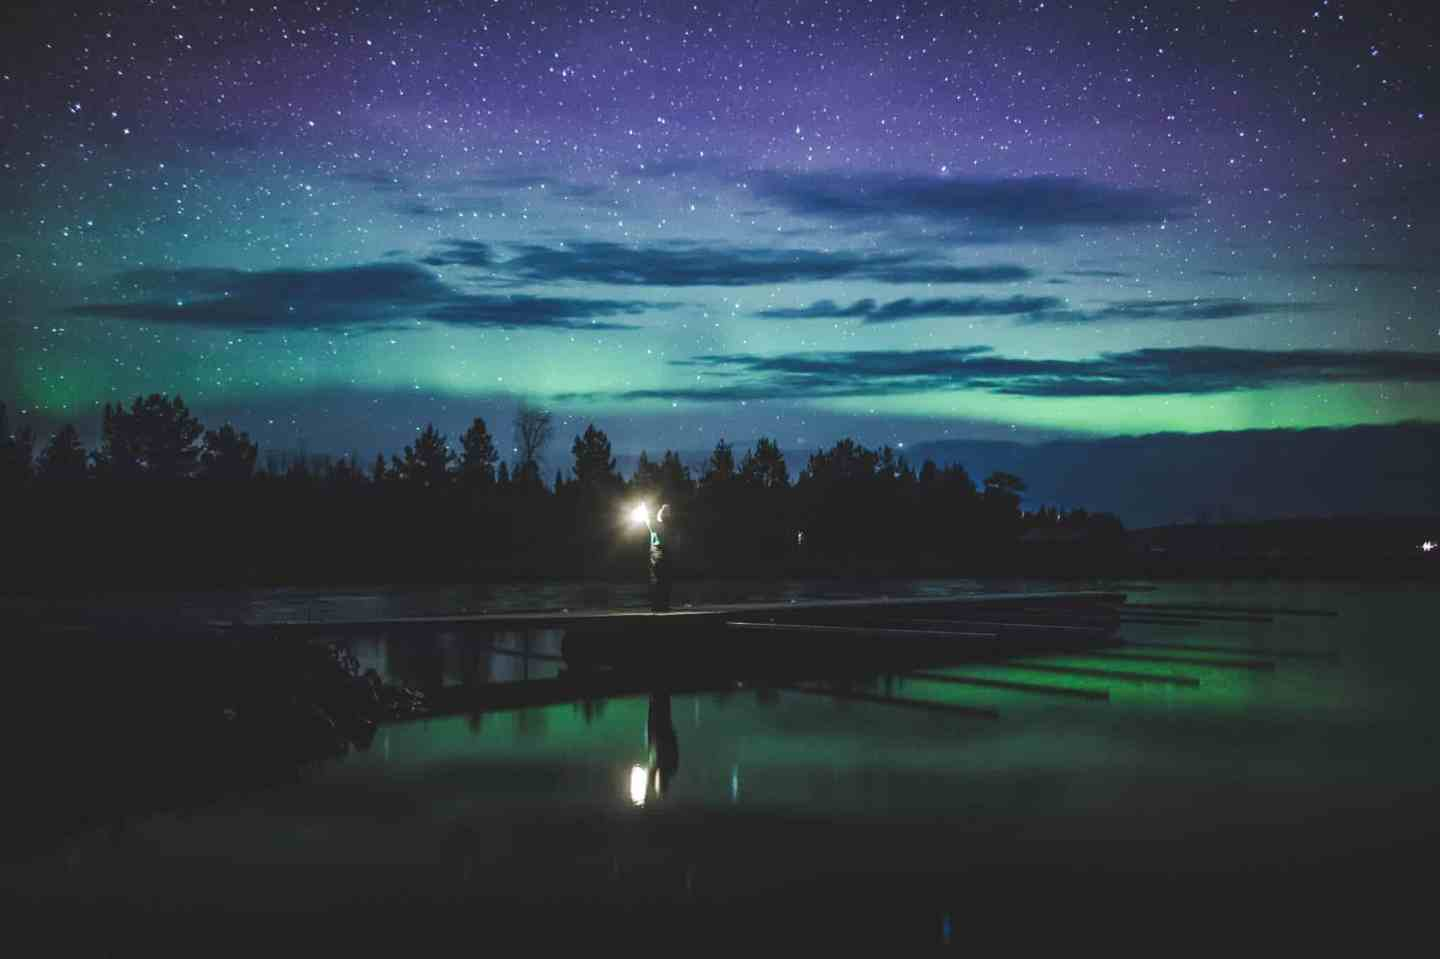 Northern Lights light up the night sky in Finnish Lapland